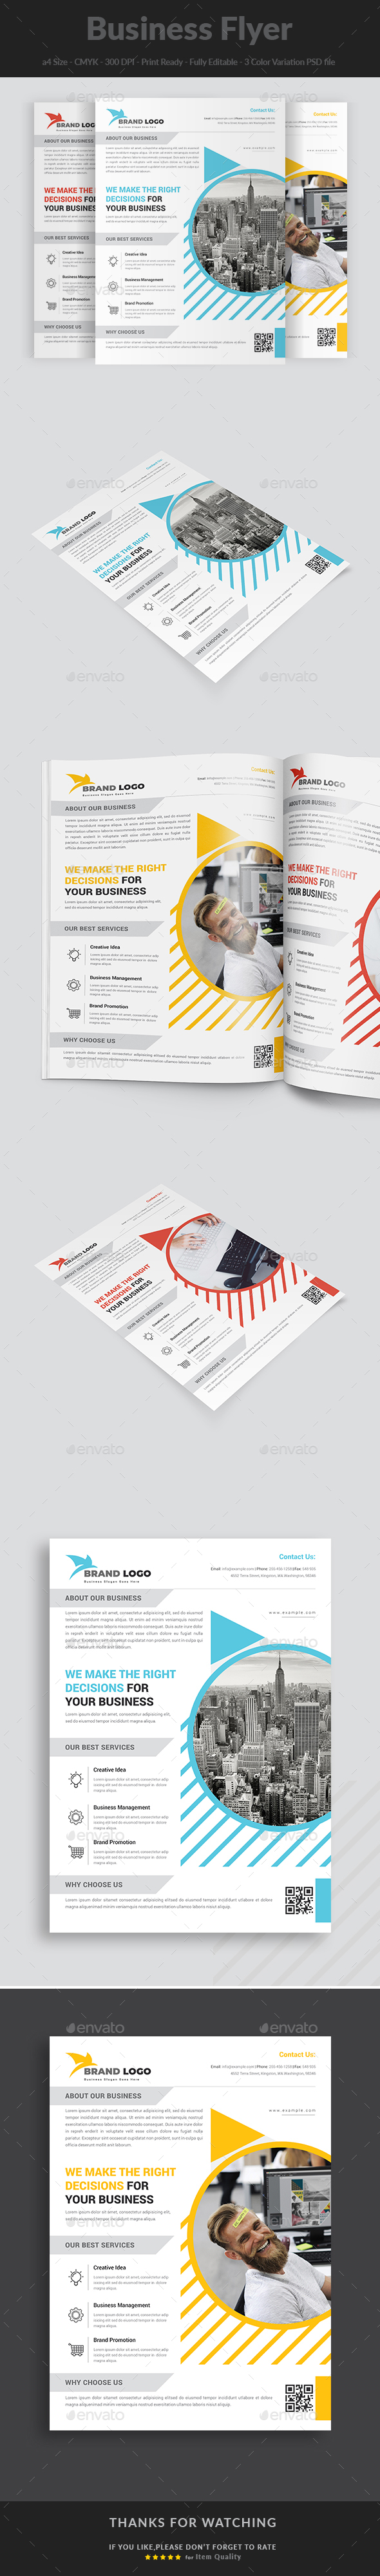 Business Flyer Templates - Corporate Flyers